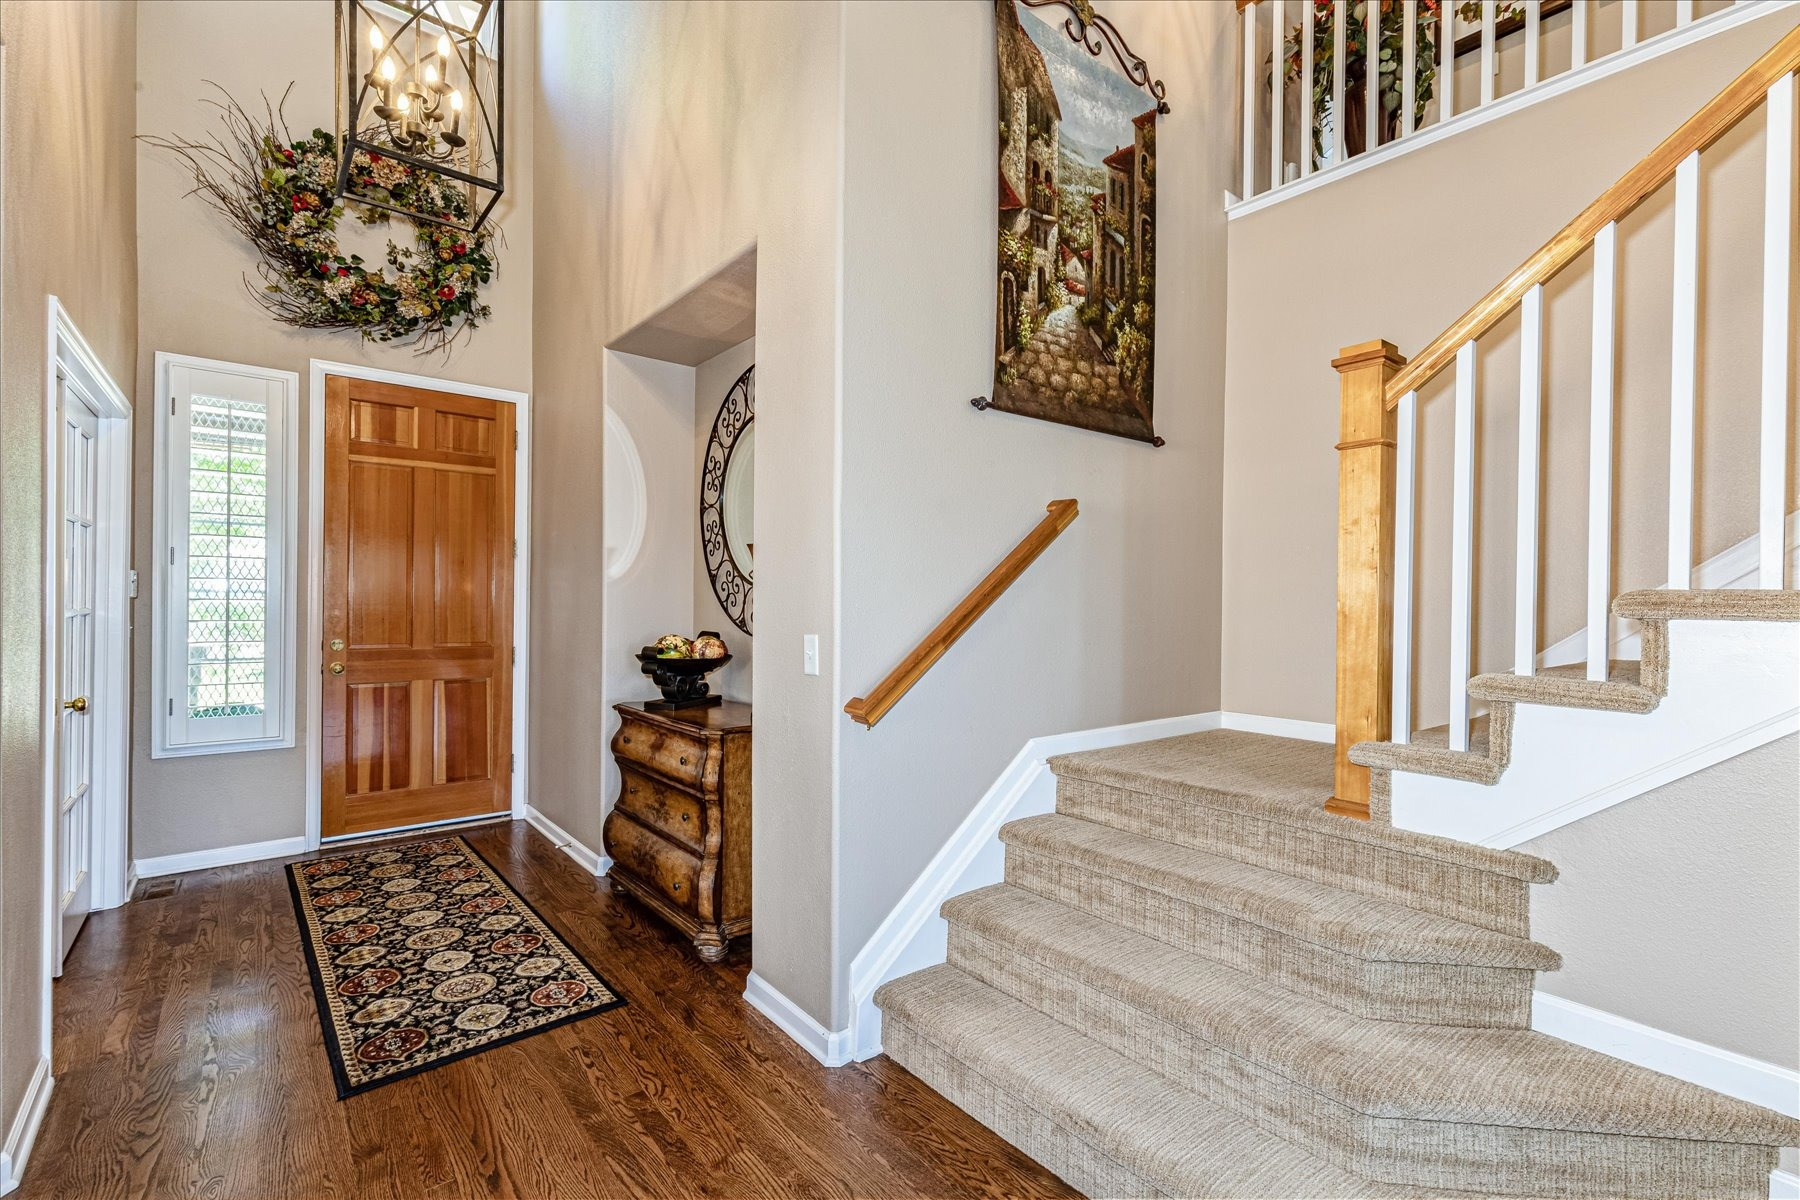 Spacious Two Story Entry Hall